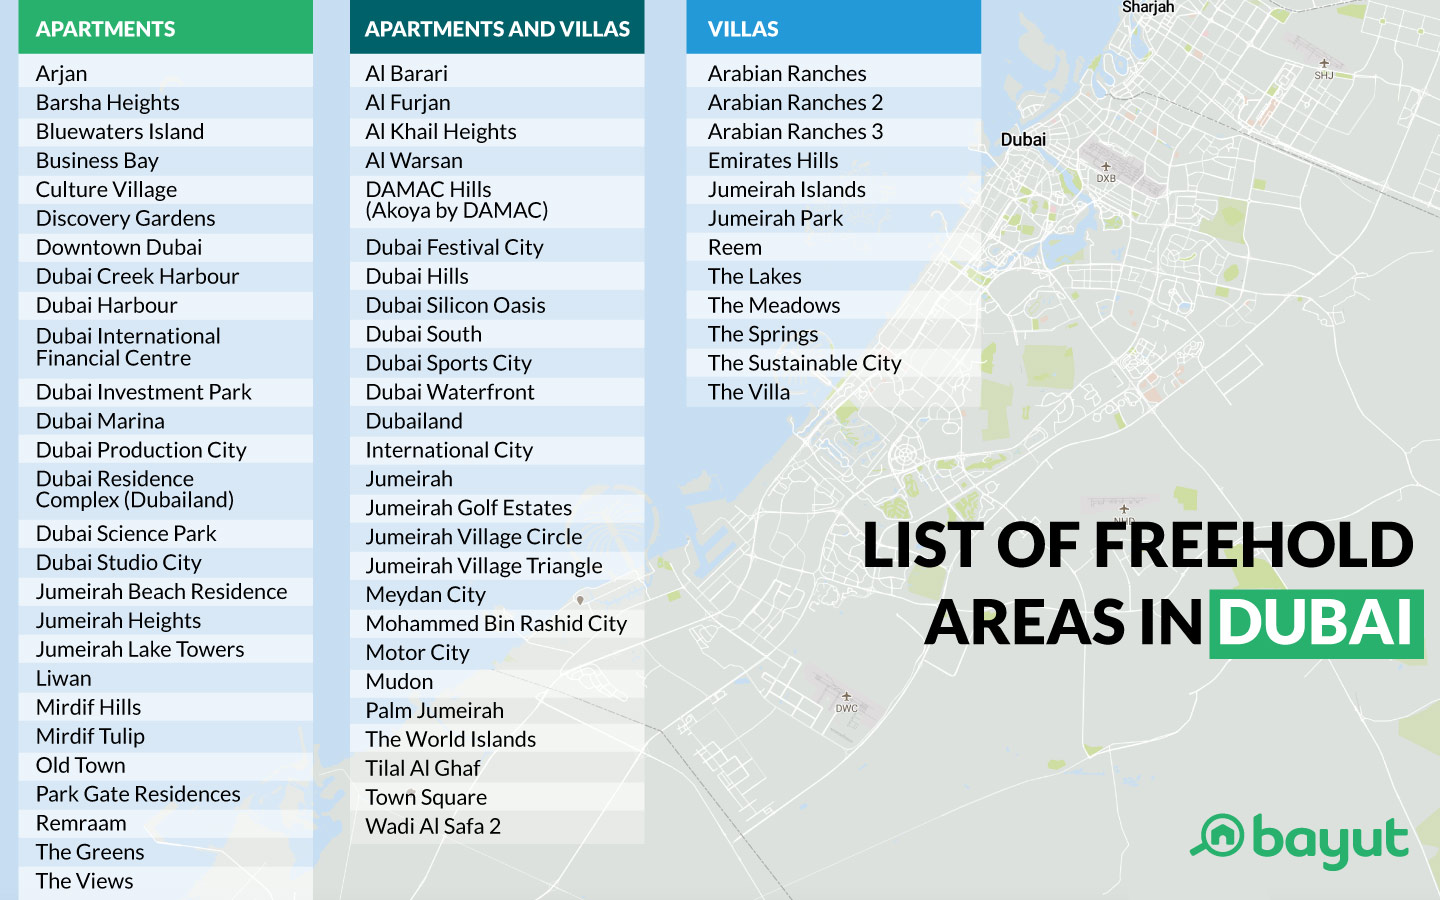 Dubai freehold areas map